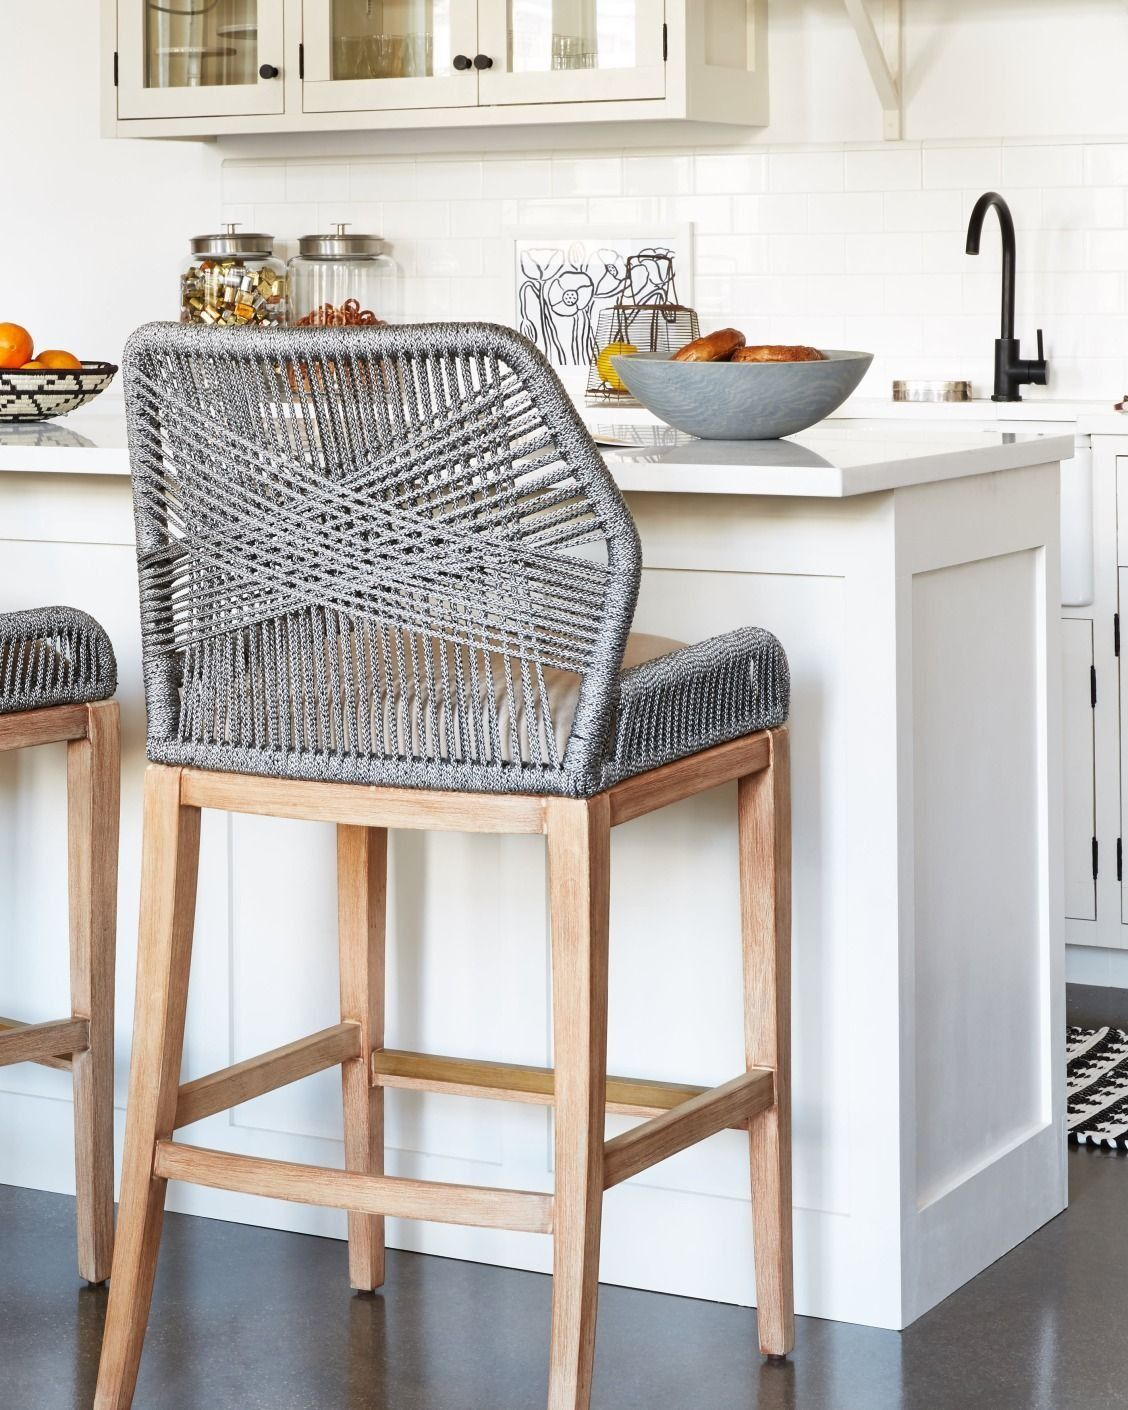 These Woven Rope Counter Stools Are Such A Fun Unexpected Kitchen Accent Kitchen Stools Kitchen Bar Stools Kitchen Counter Stools